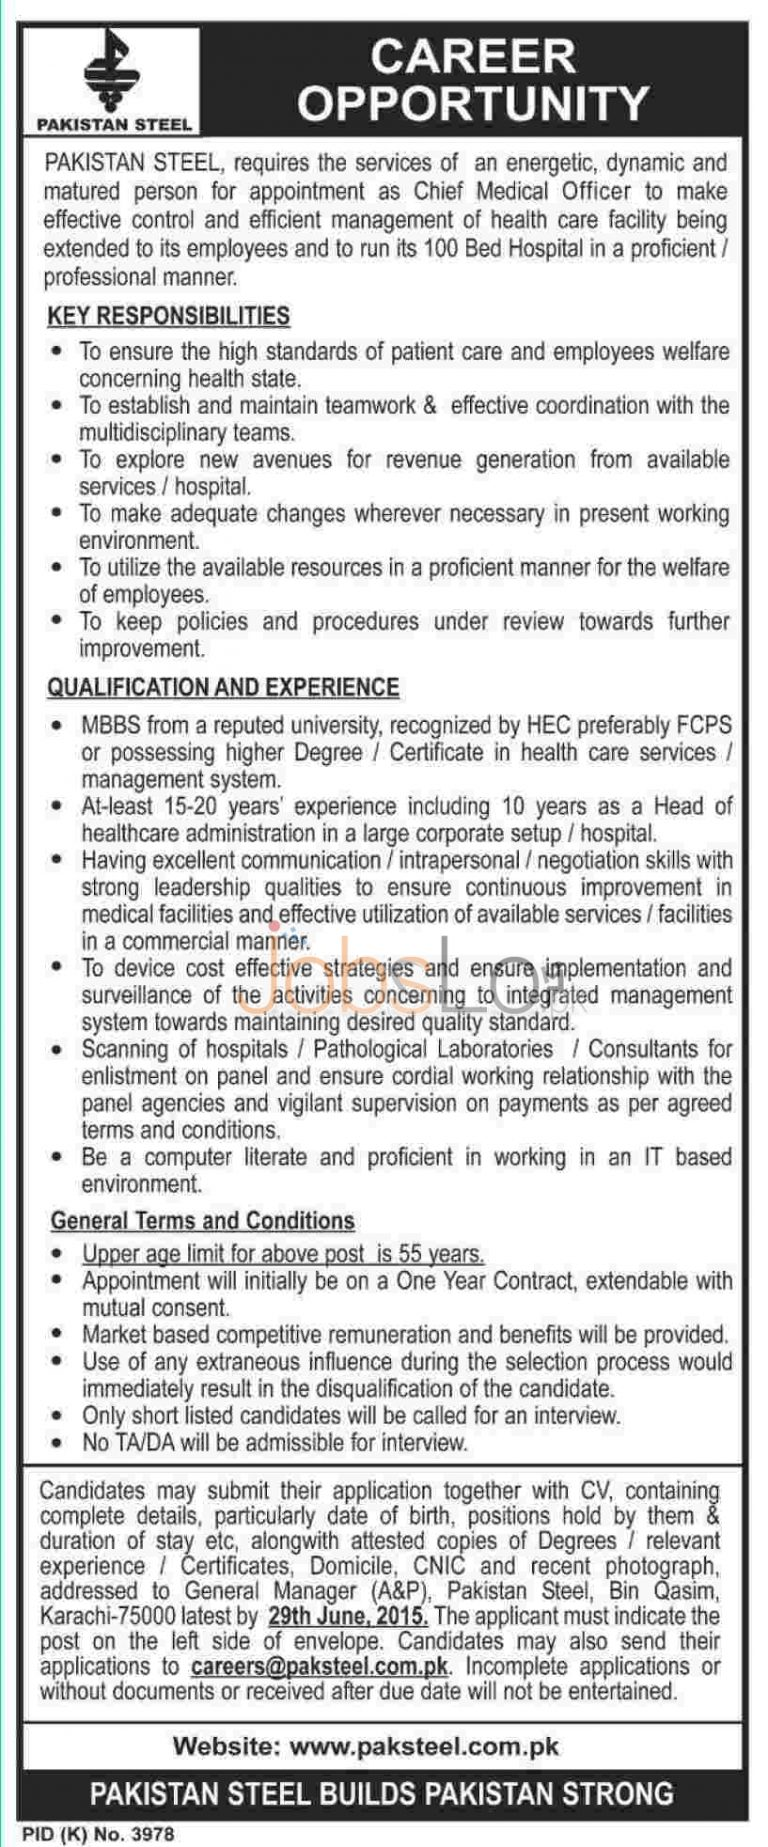 Pakistan Steel Mill Jobs 2015 for Chief Medical Officer